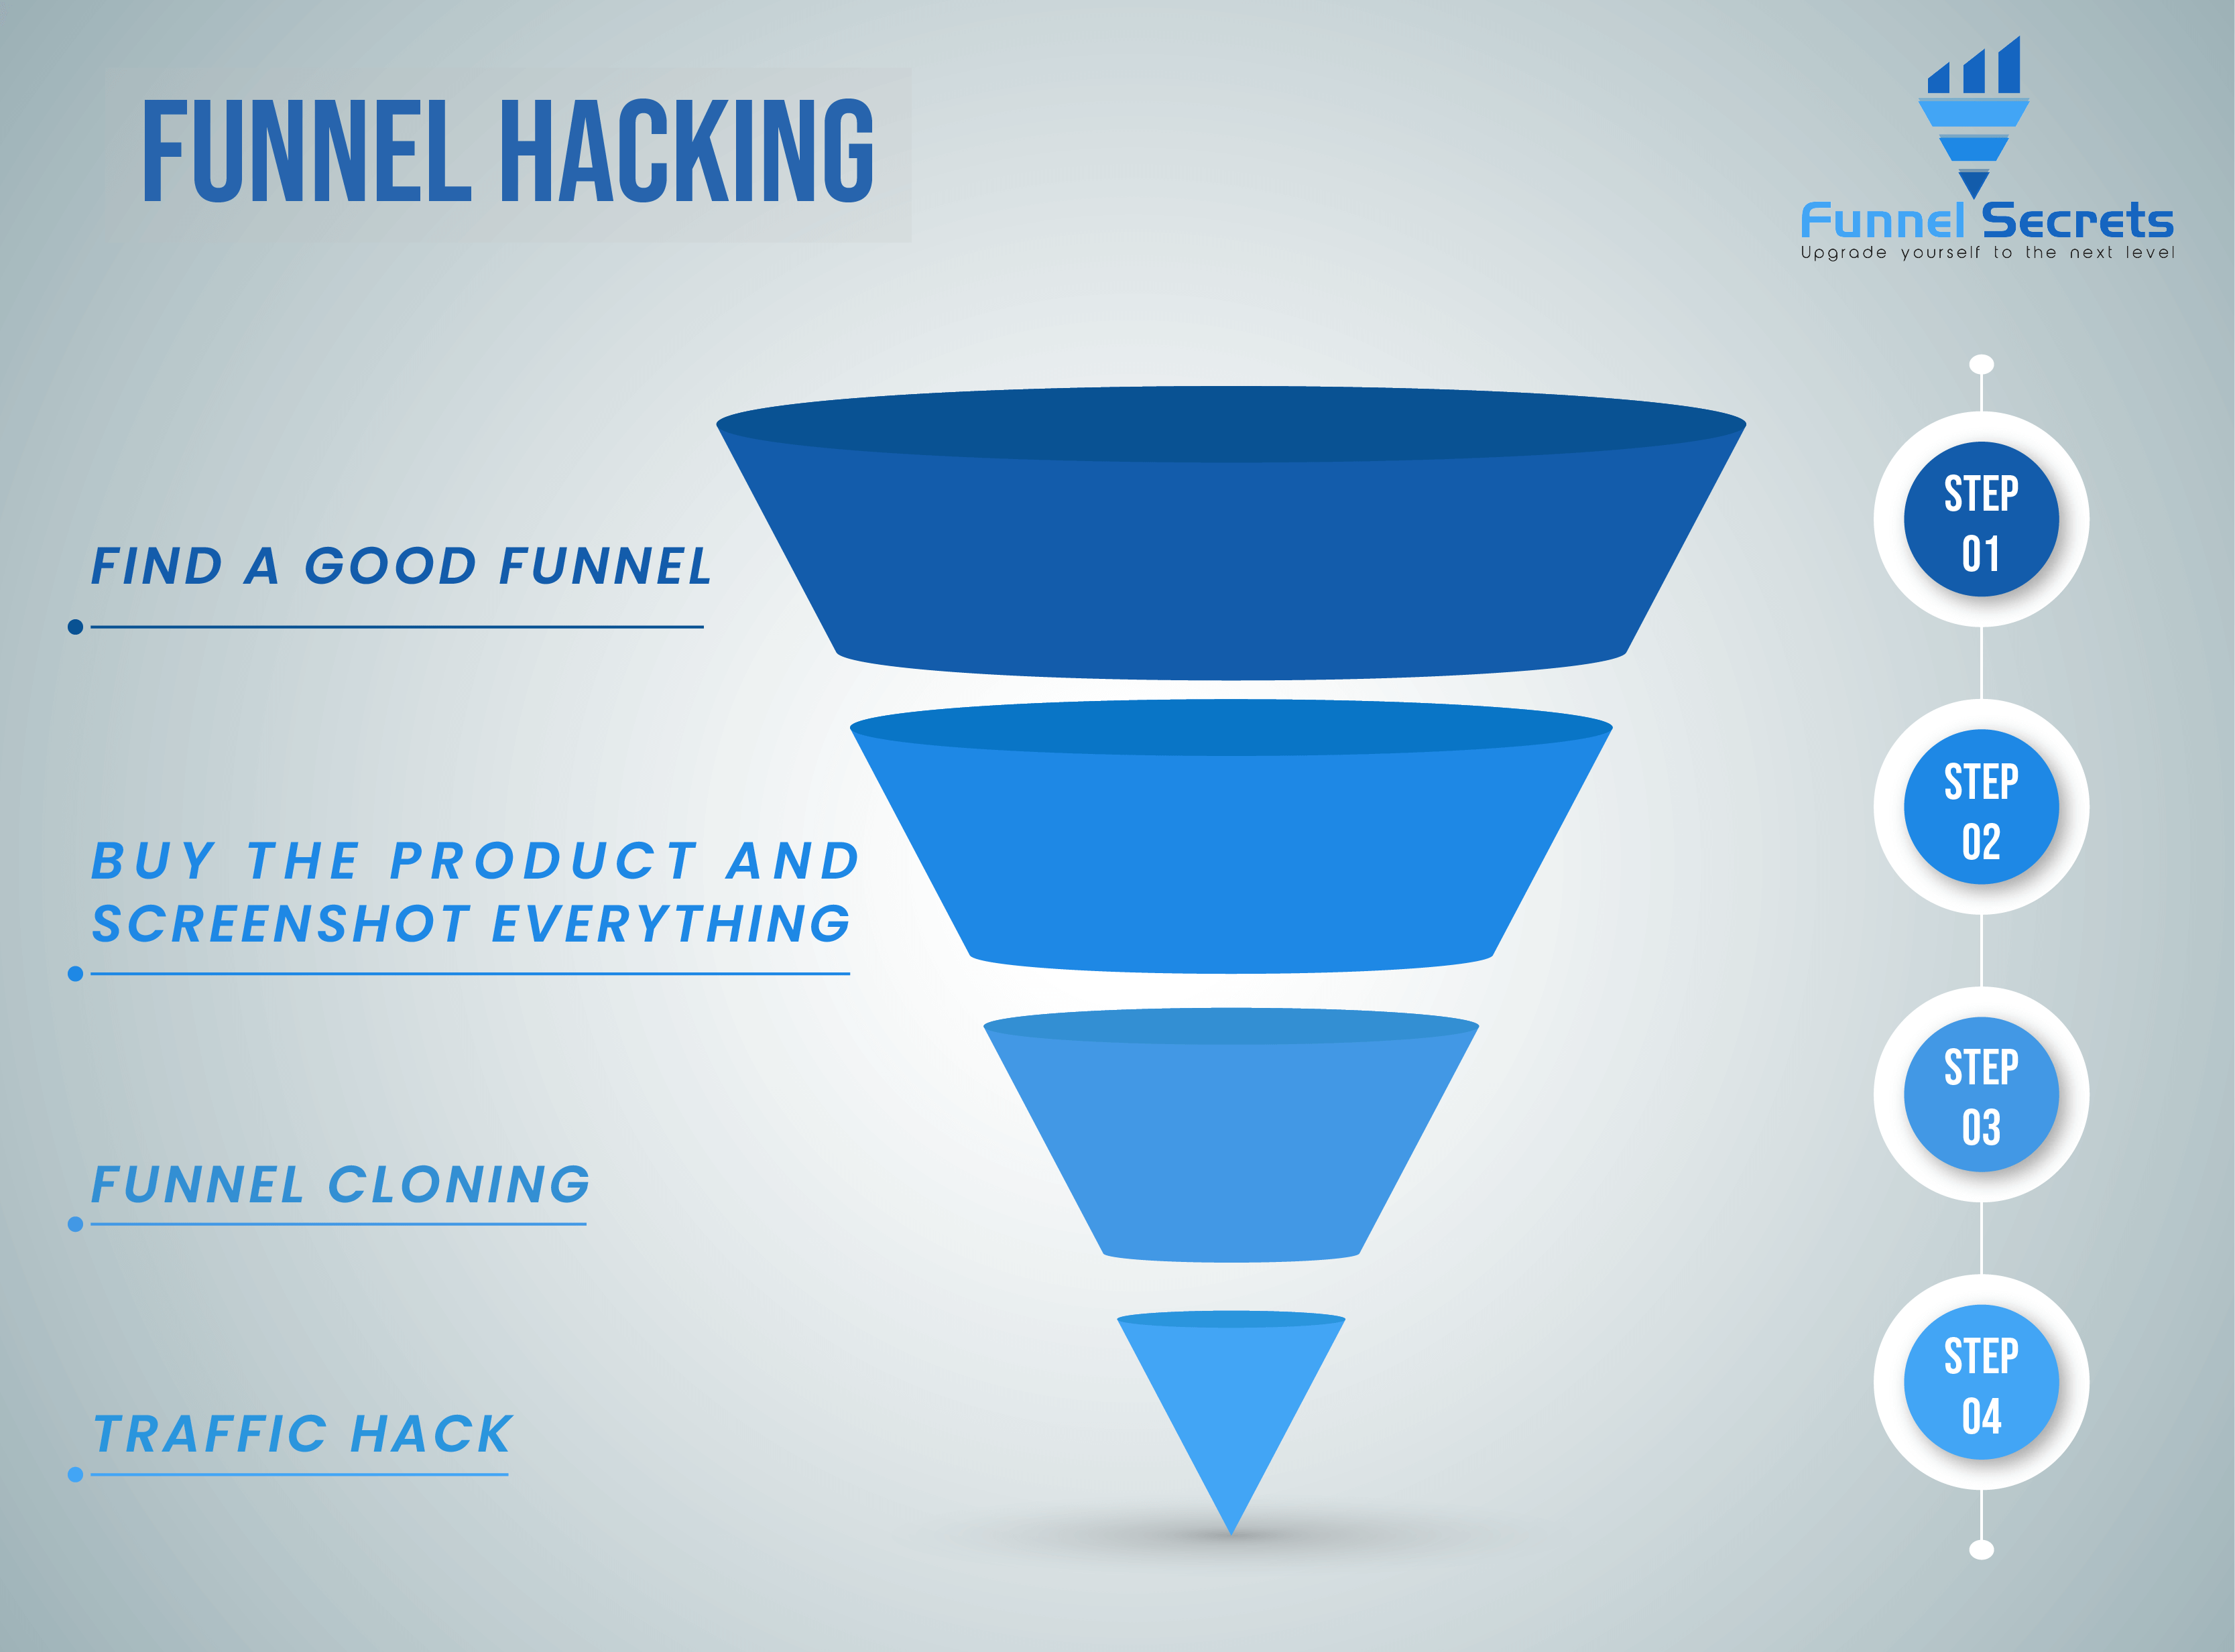 how to funnel hacking